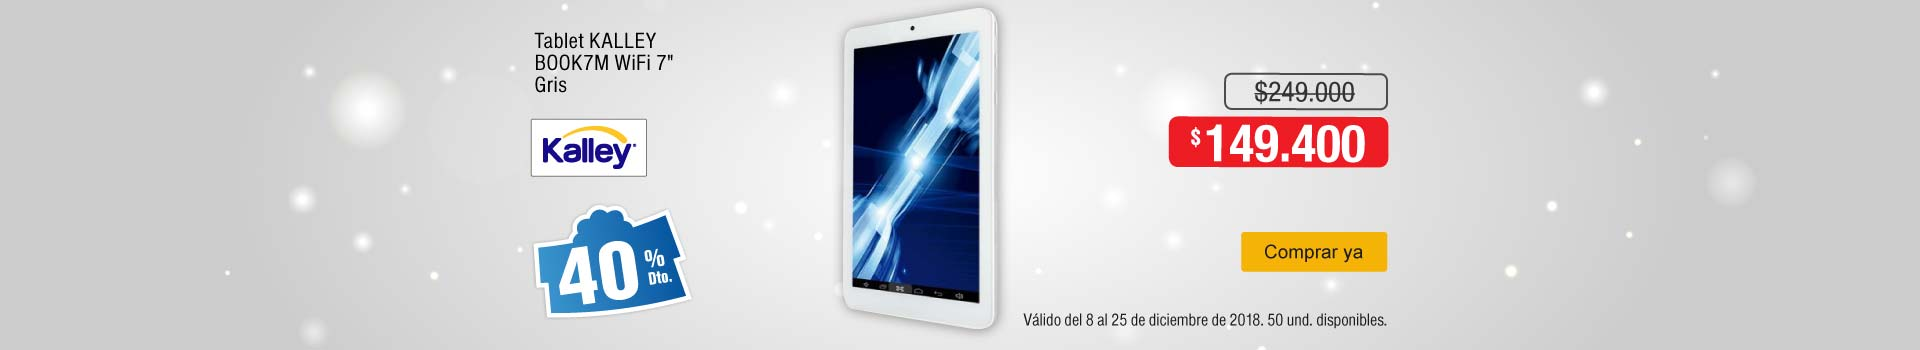 AK-KT-BCAT-3-computadores y tablets-PP---Kalley-Tablet KALLEY BOOK7M gris-dic12